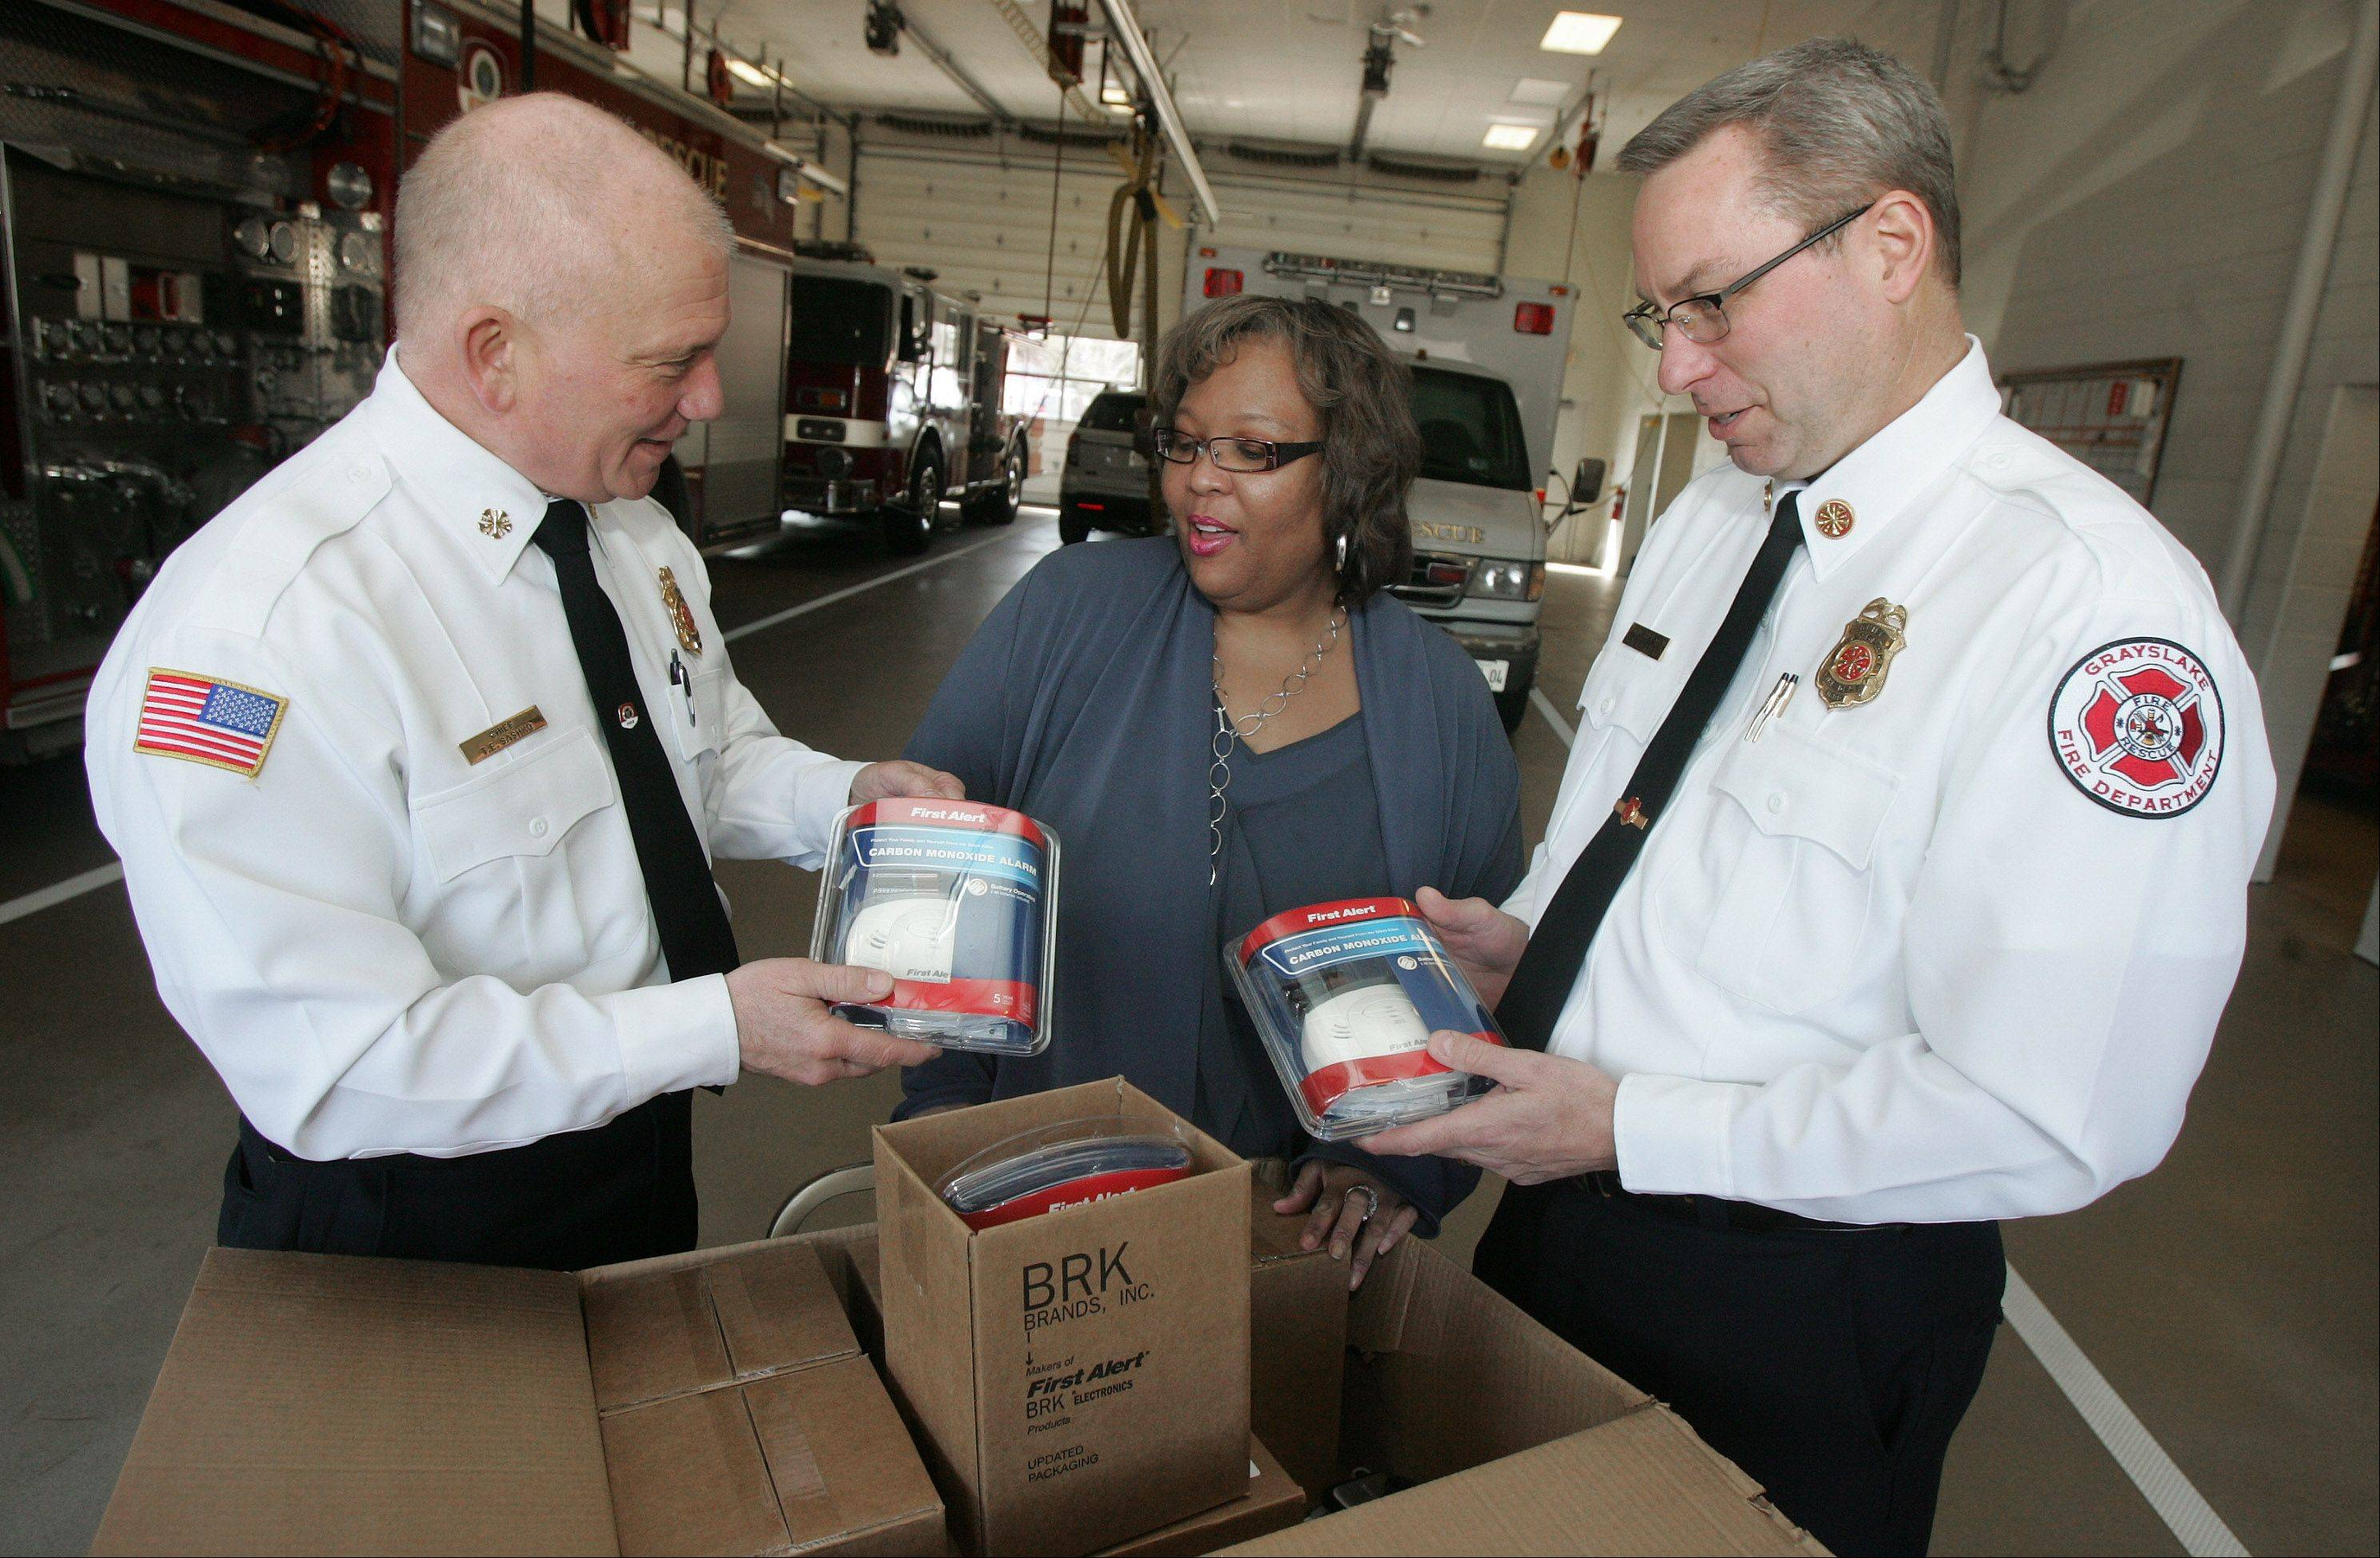 Andrea Danks, a representative for North Shore Gas, delivers boxes of carbon monoxide detectors to Mundelein Fire Chief Tim Saschko, left, and Grayslake Fire Chief John Christian at the Mundelein Fire Department. North Shore Gas donated the First Alert detectors to the two departments to be given to residents in need.